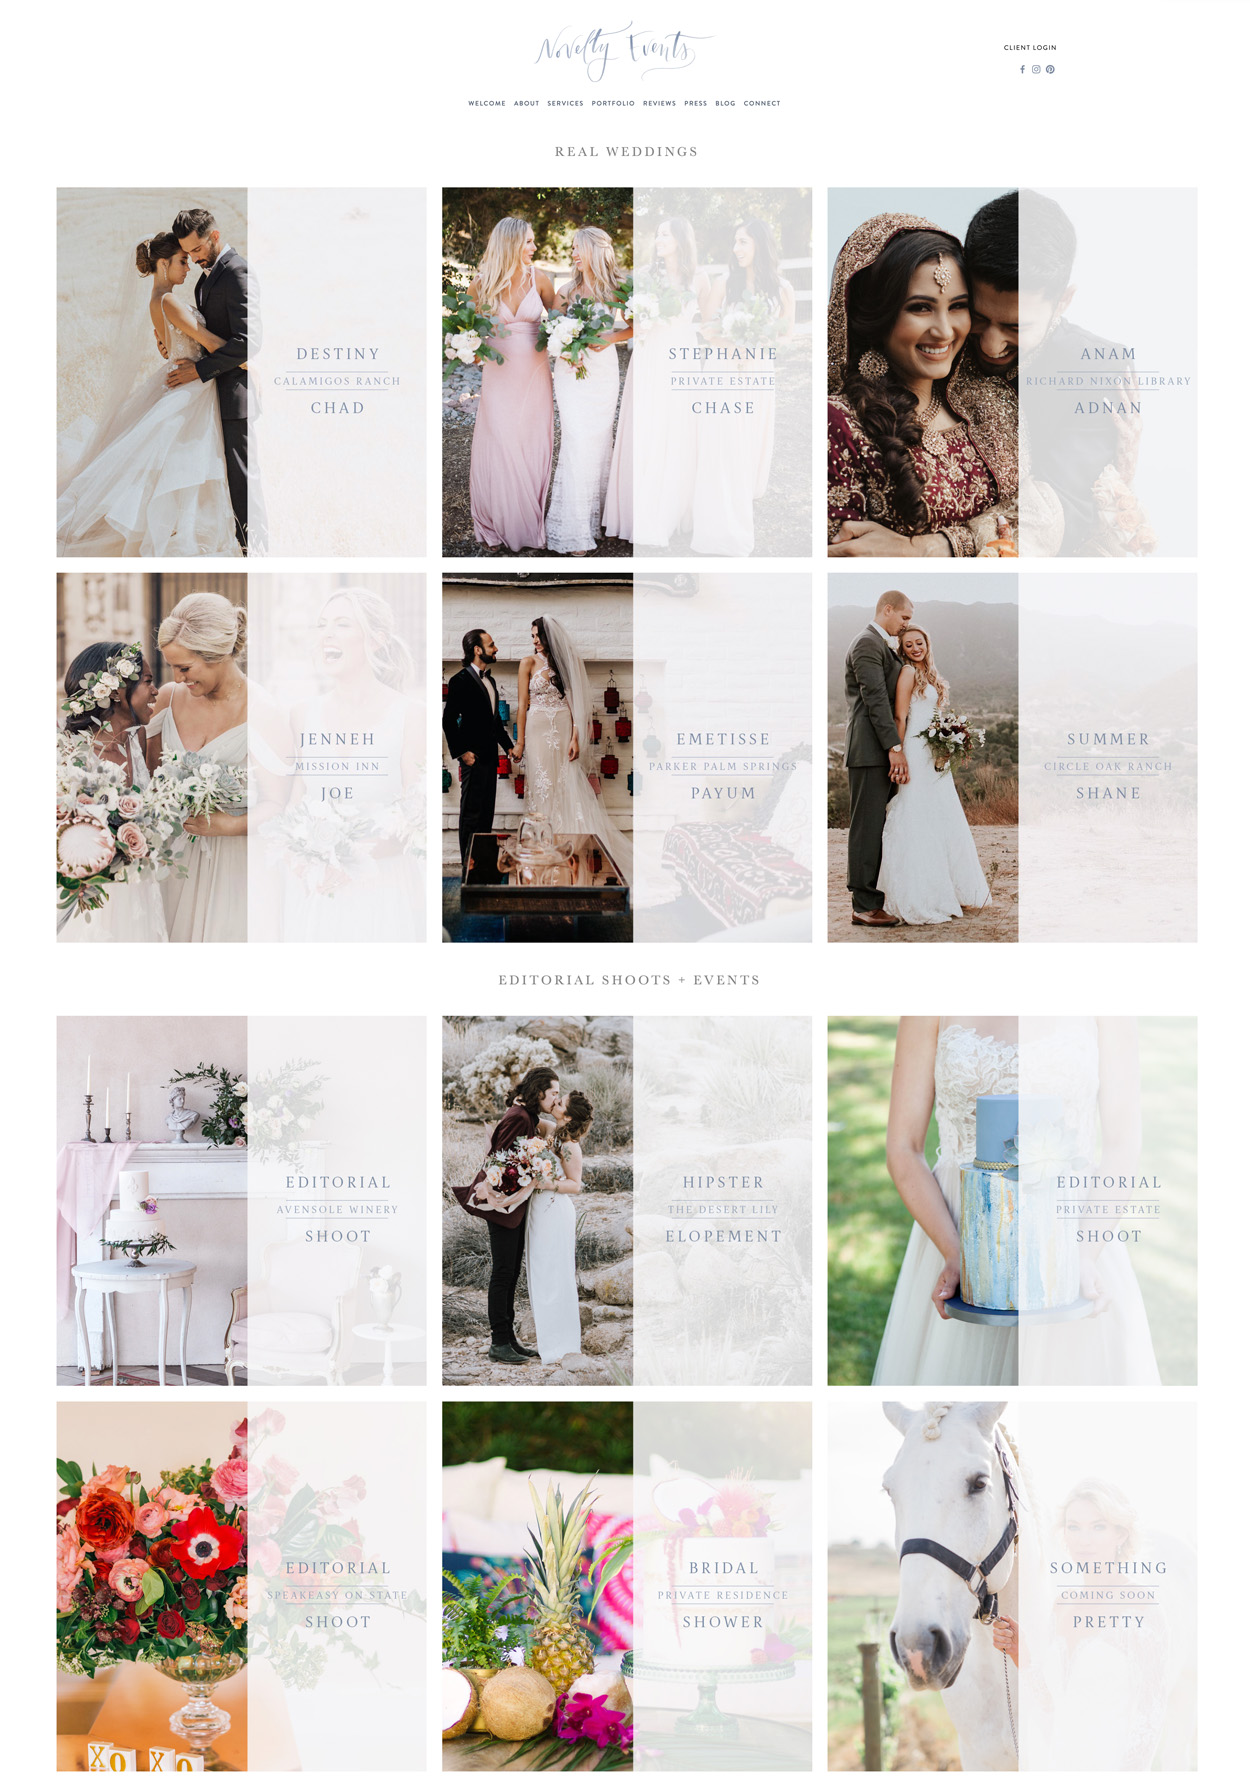 theeditorstouch.com | Website Design by The Editor's Touch | Squarespace Web Designer for Wedding Professionals and the Event Industry | Novelty Events Southern California Planner